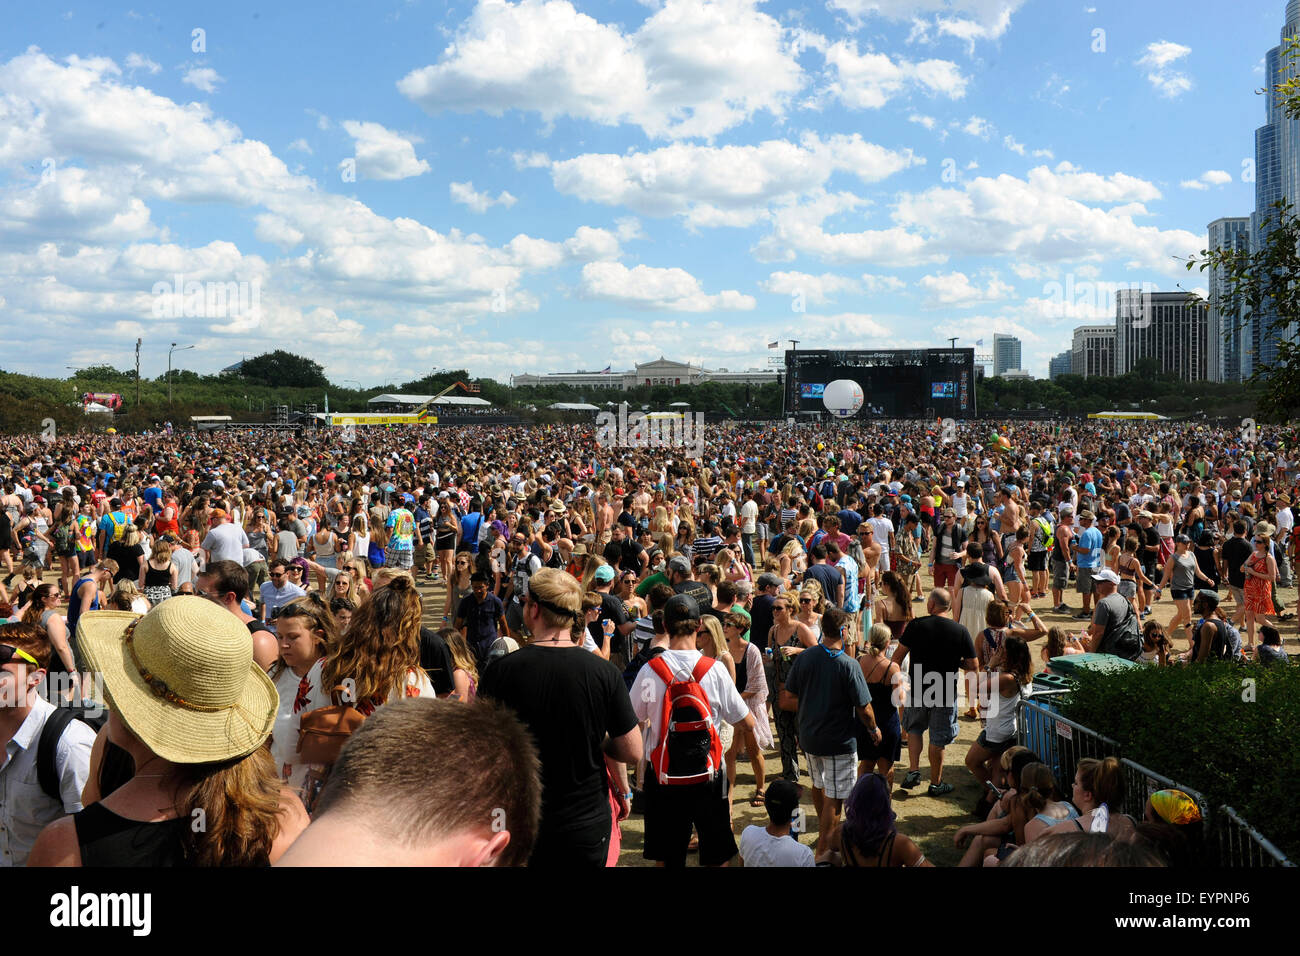 August 01, 2015. - People at the Lollapalooza Festival 2015 in Grant Park. Chicago, USA/picture alliance - Stock Image